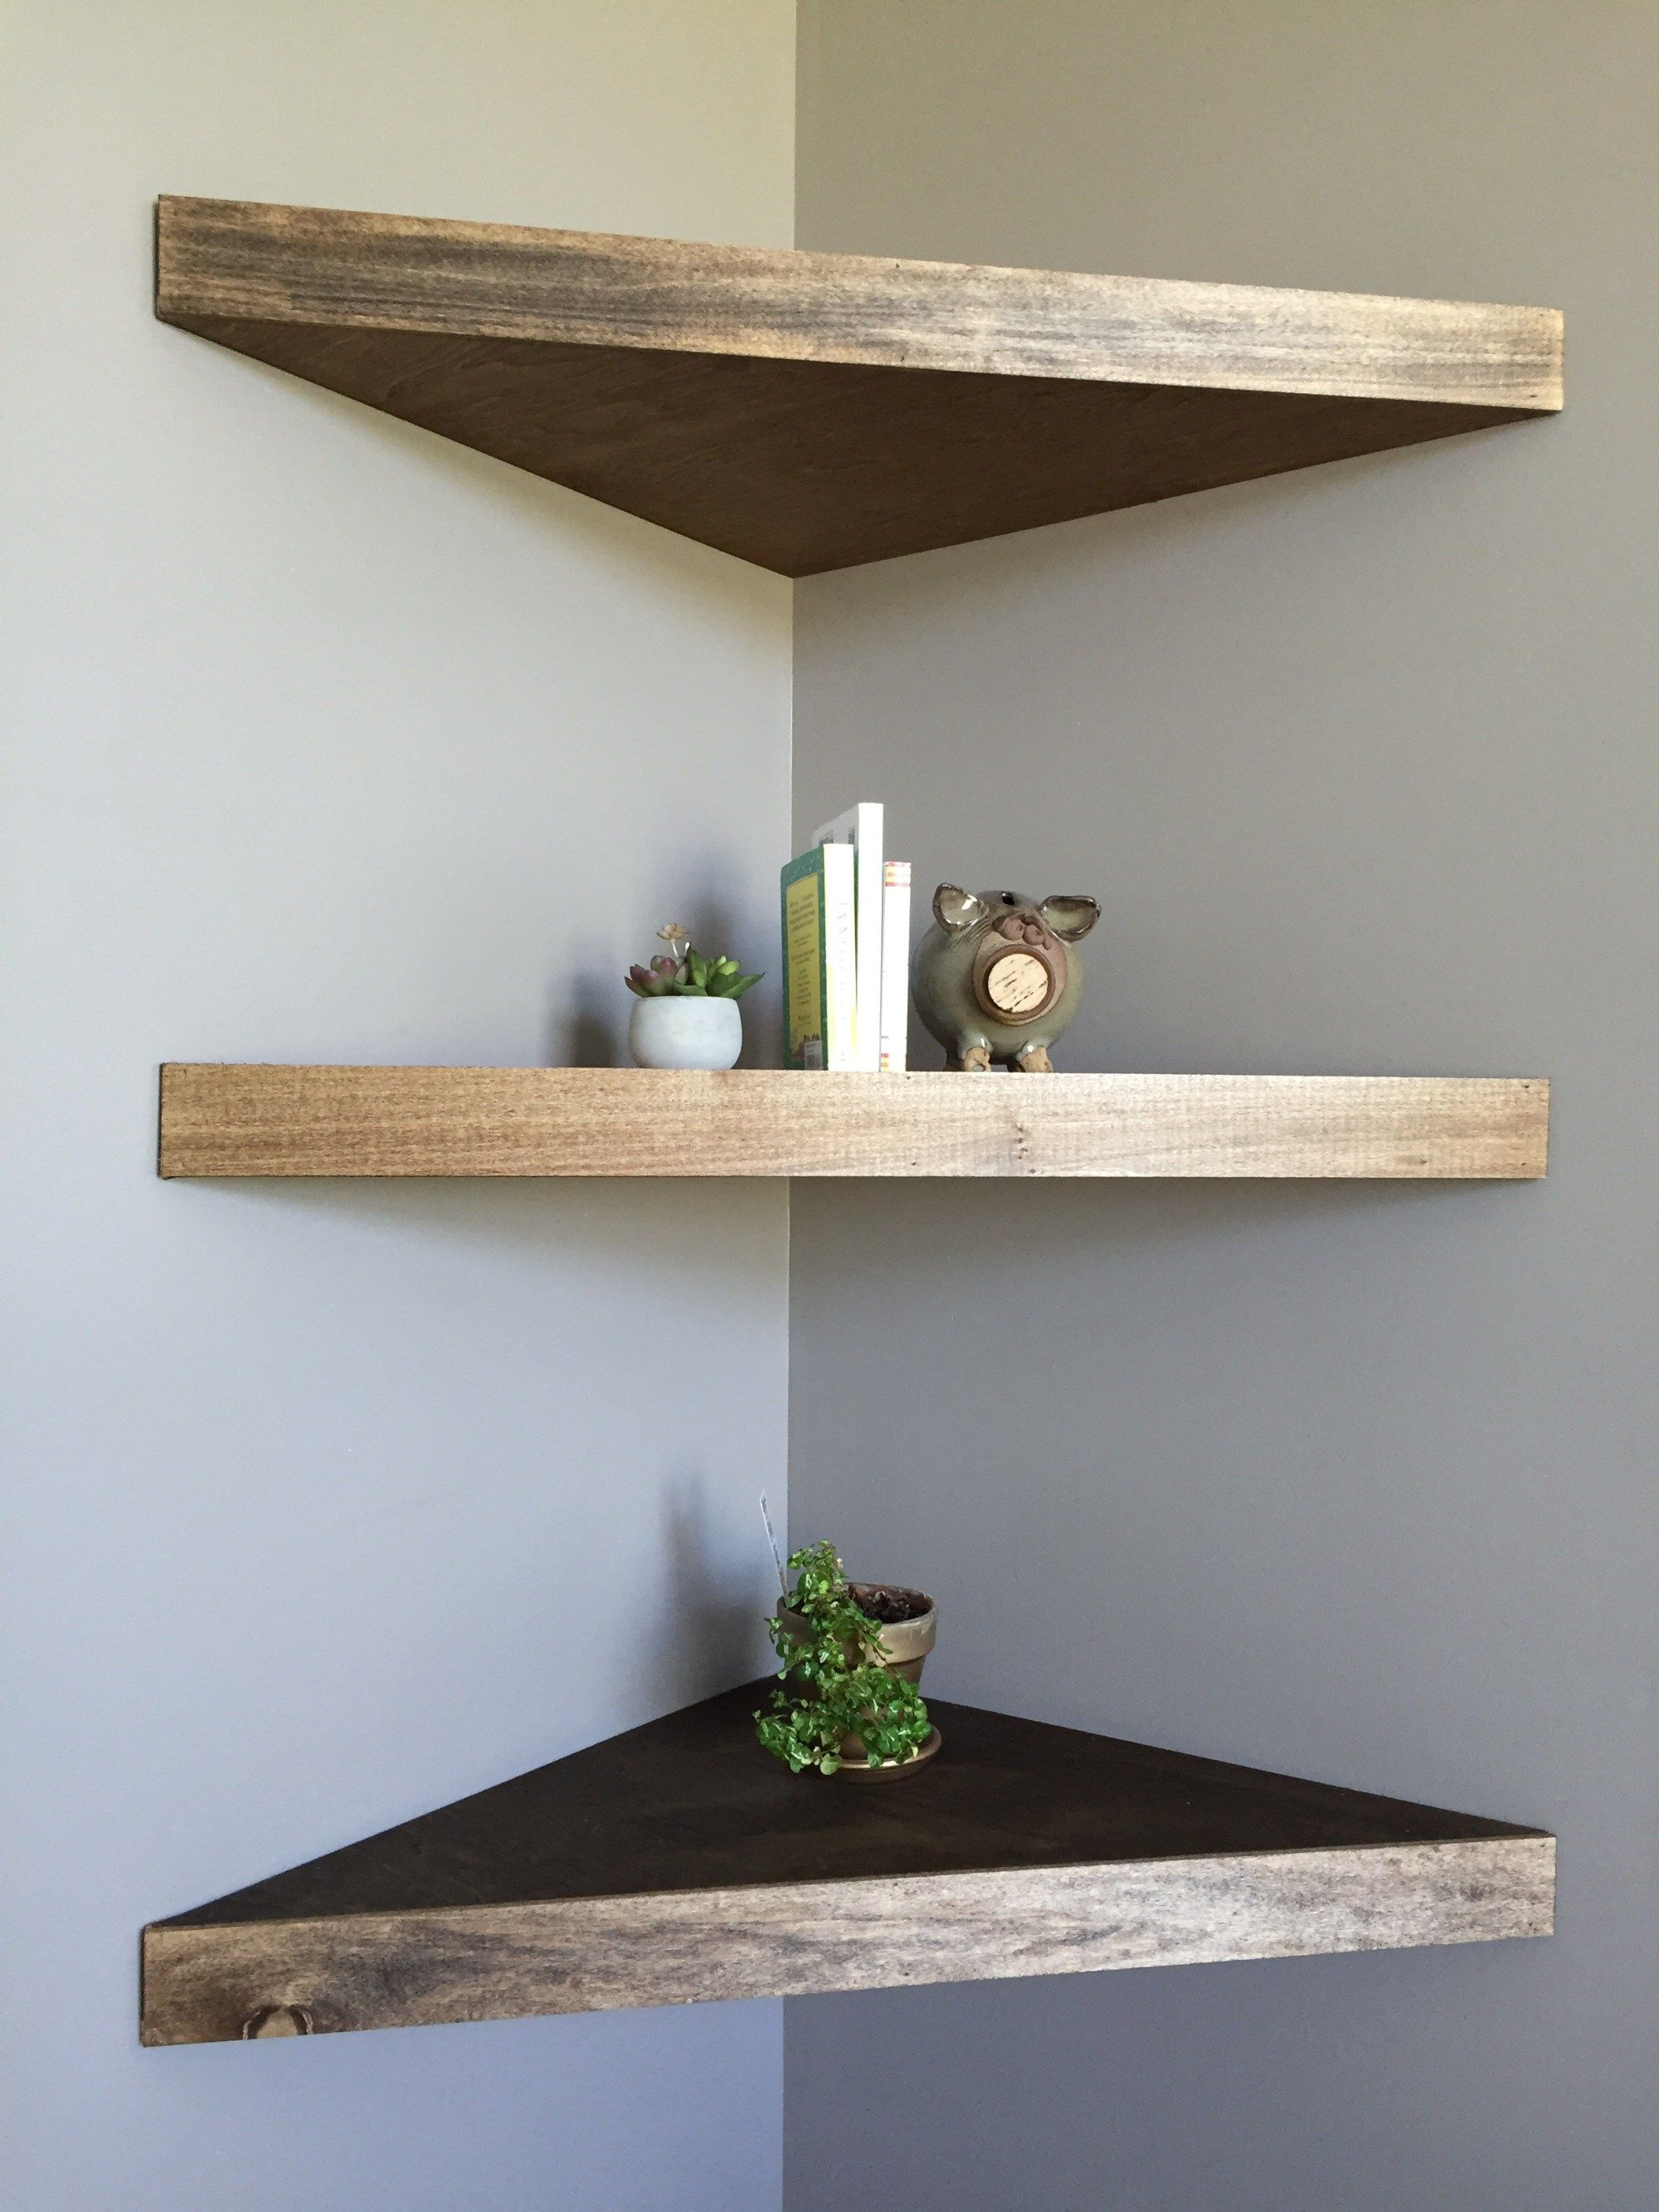 diy floating corner shelves for the home inch shelf glass component clean white porcelain sink small wood brackets bunnings shelving clothes storage tures kitchens with open hall